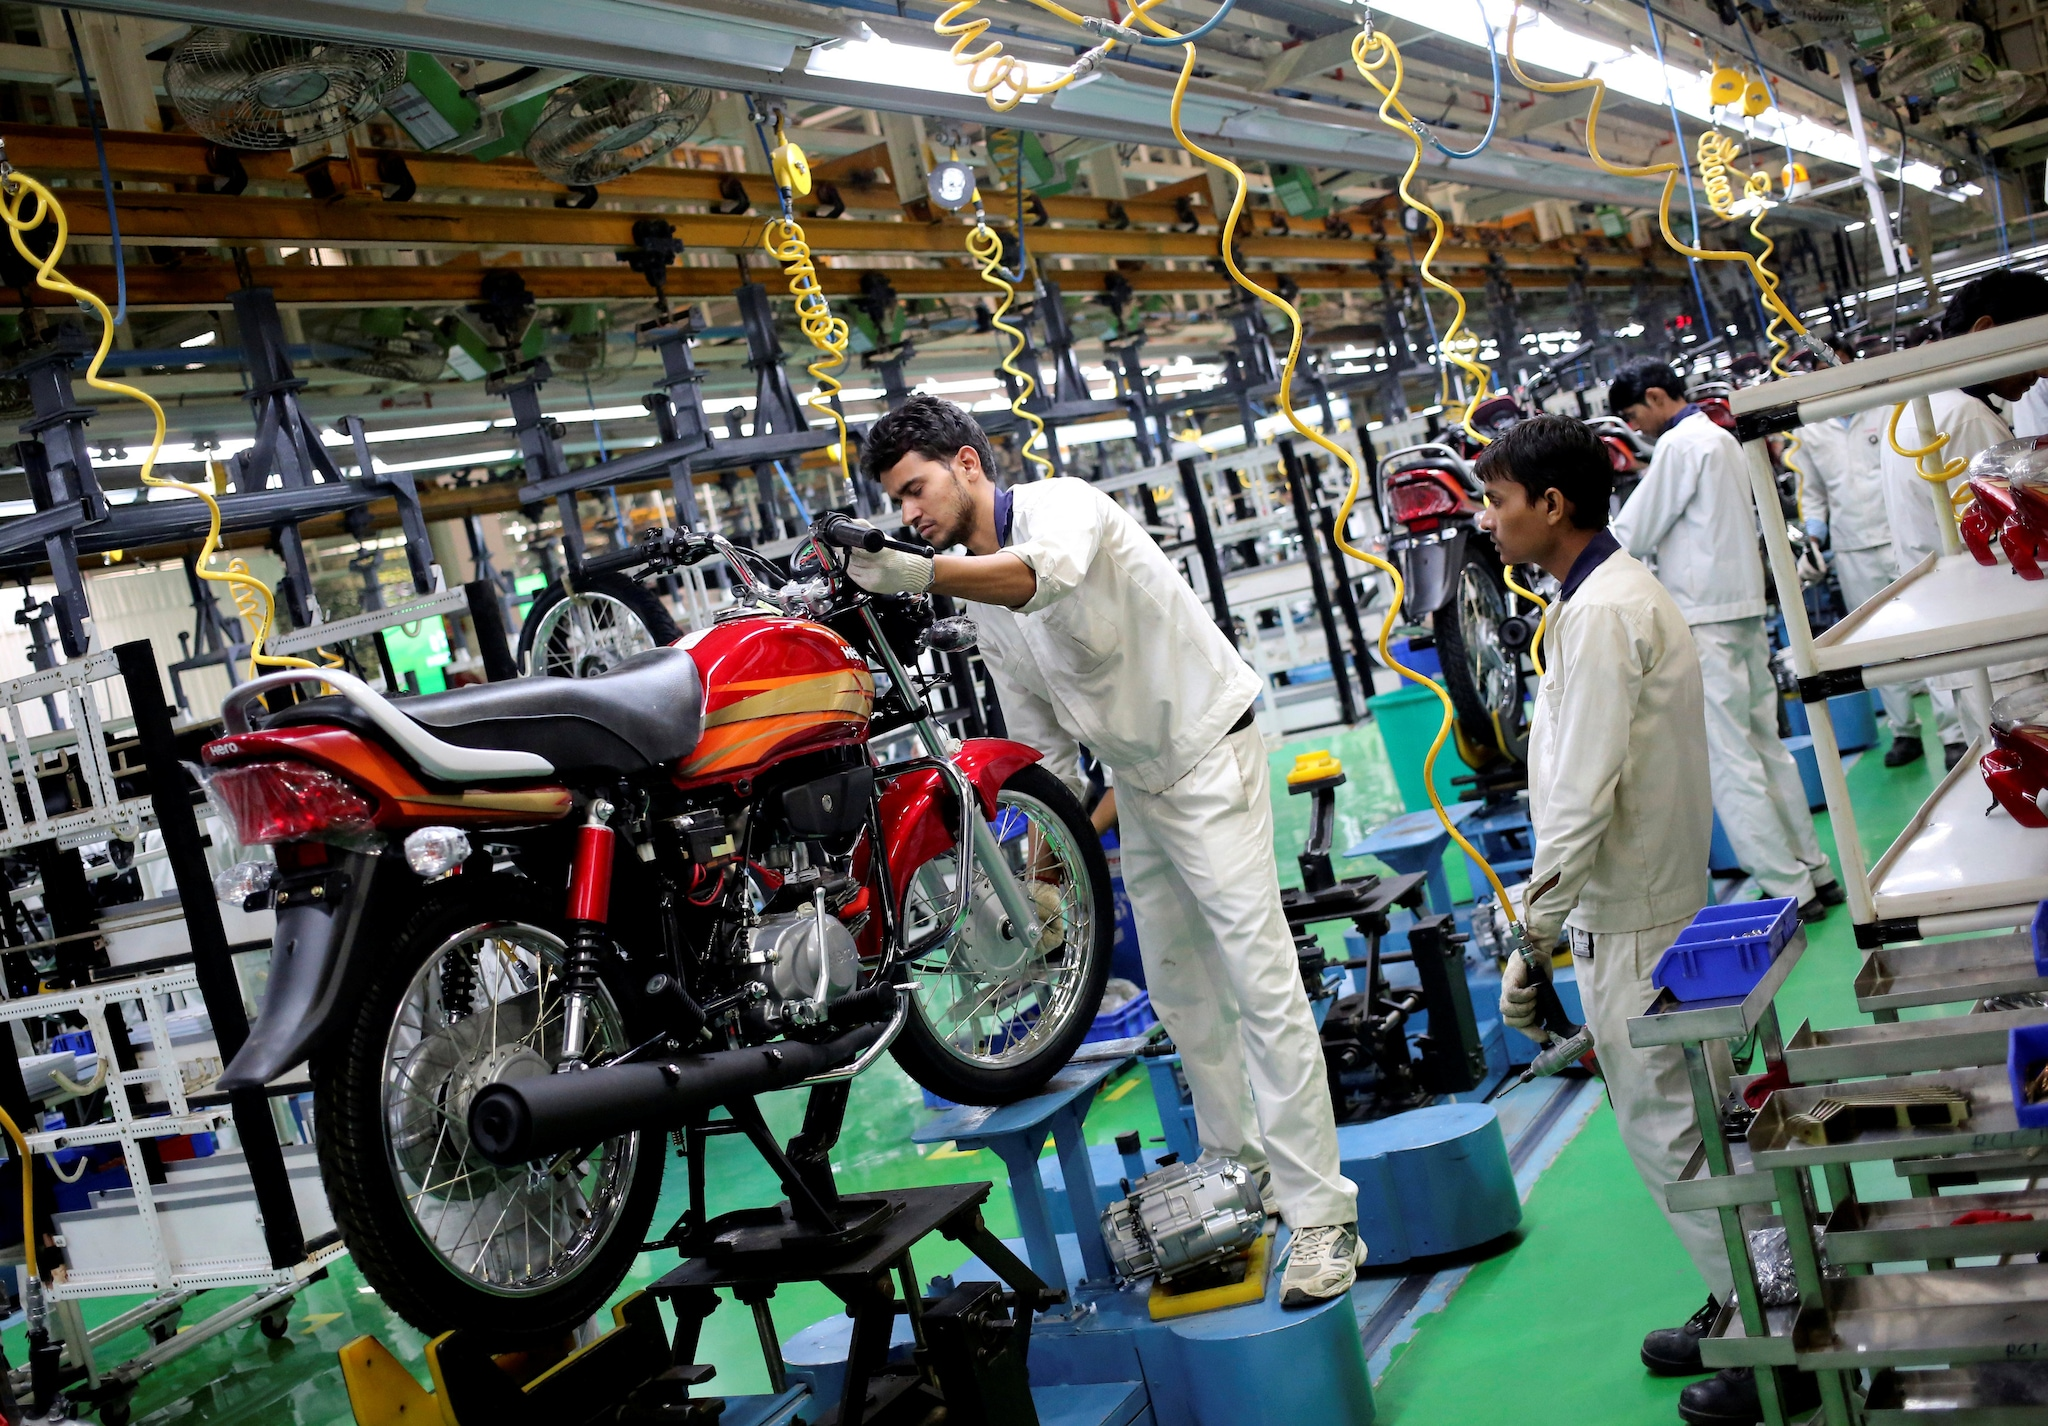 Hero MotoCorp: The company stretched its lead to around 20 lakh units over rival and erstwhile partner Honda in two-wheeler sales in 2018-19 amid a slowdown in the domestic market. (Image: Reuters)